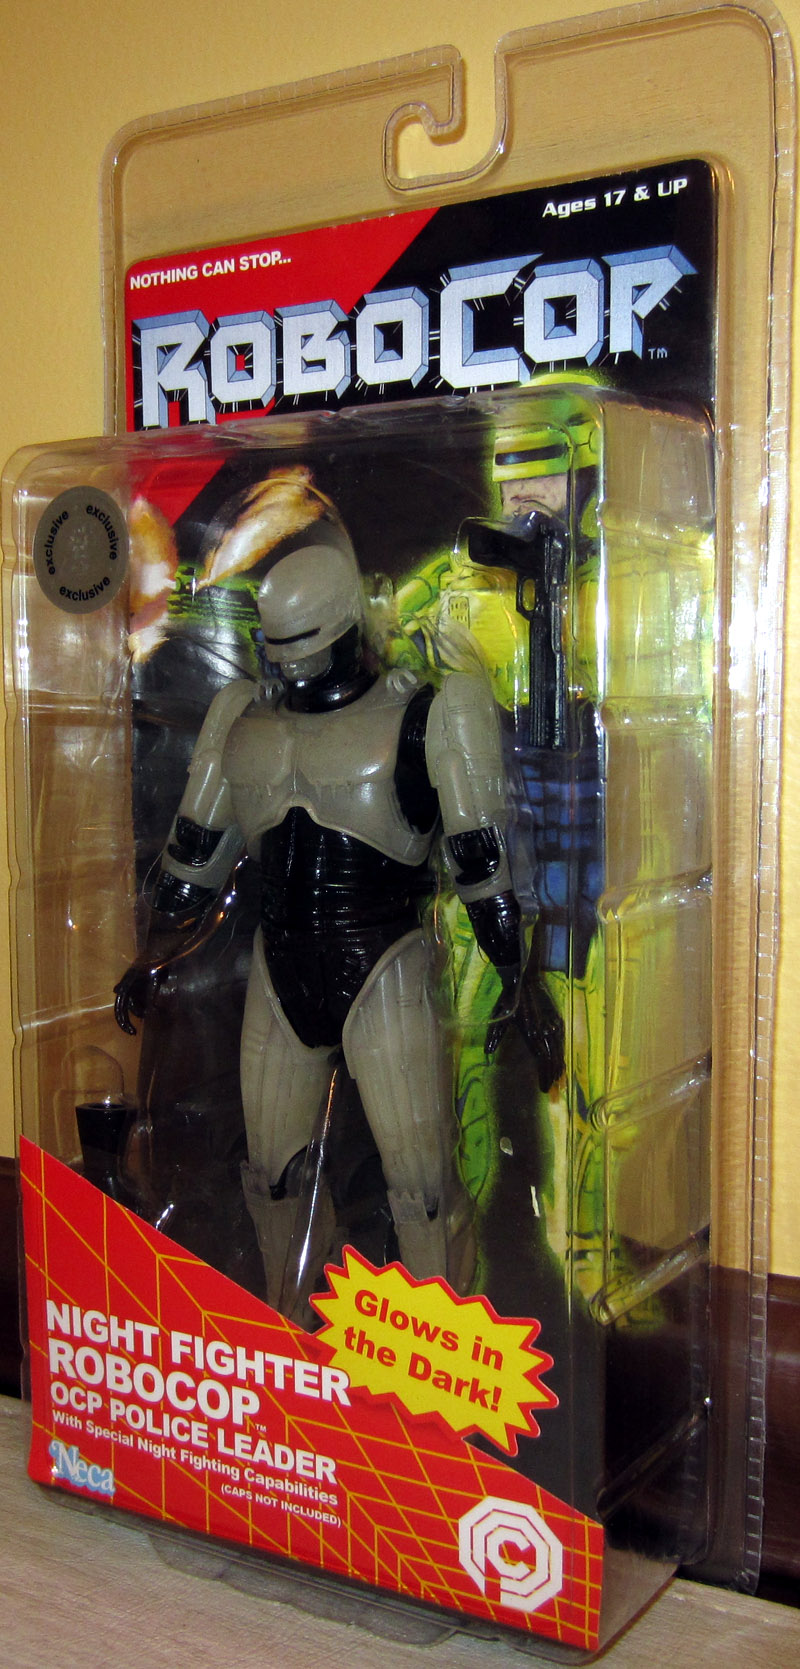 Night Fighter Robocop (Toys R Us Exclusive)